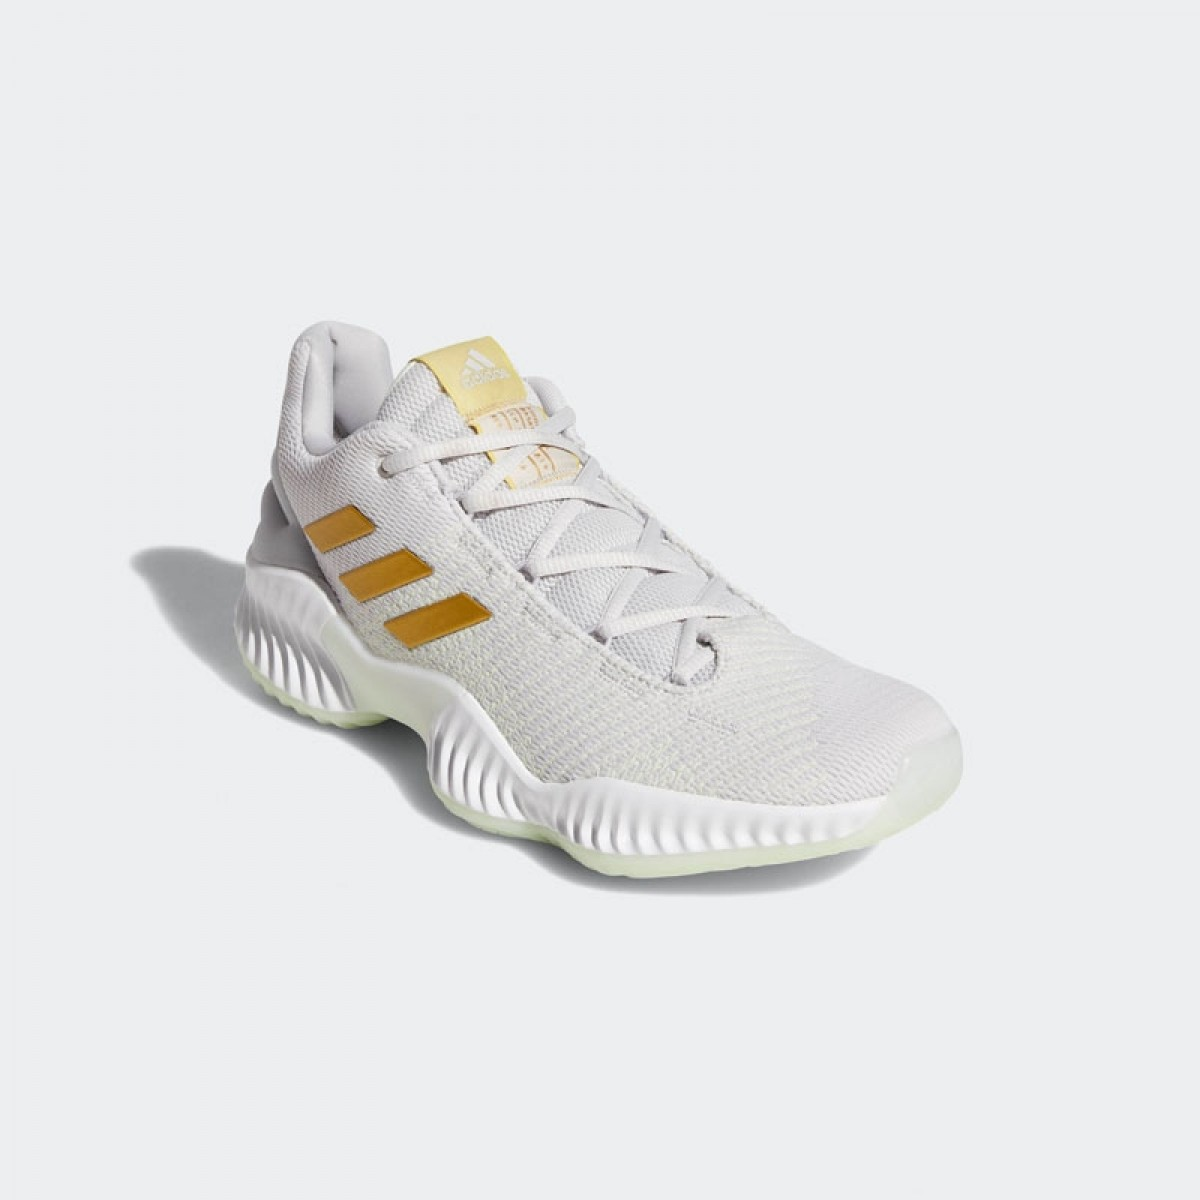 27a9d59e98d7c Buy ADIDAS Pro Bounce Low  Gold Ice  Basketball shoes   sneakers